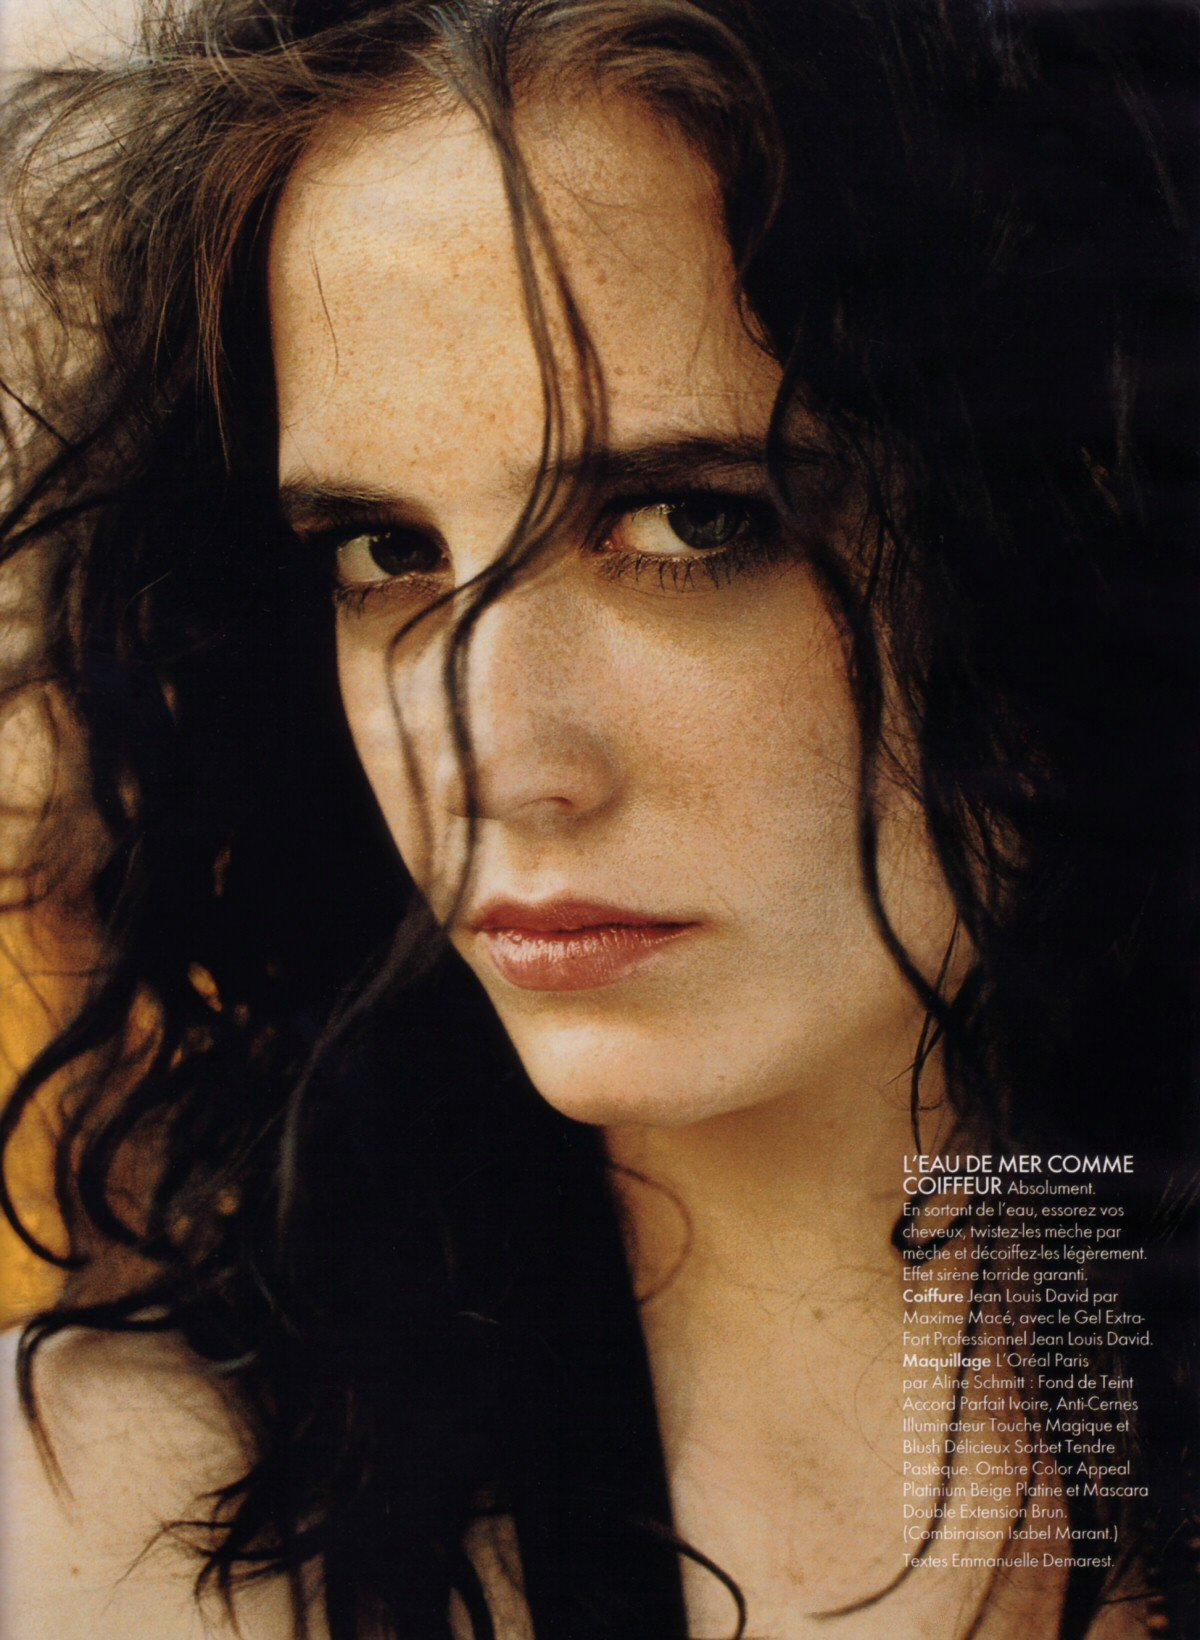 Eva Green - Eva Green Photo (244888) - Fanpop Eva Green Images